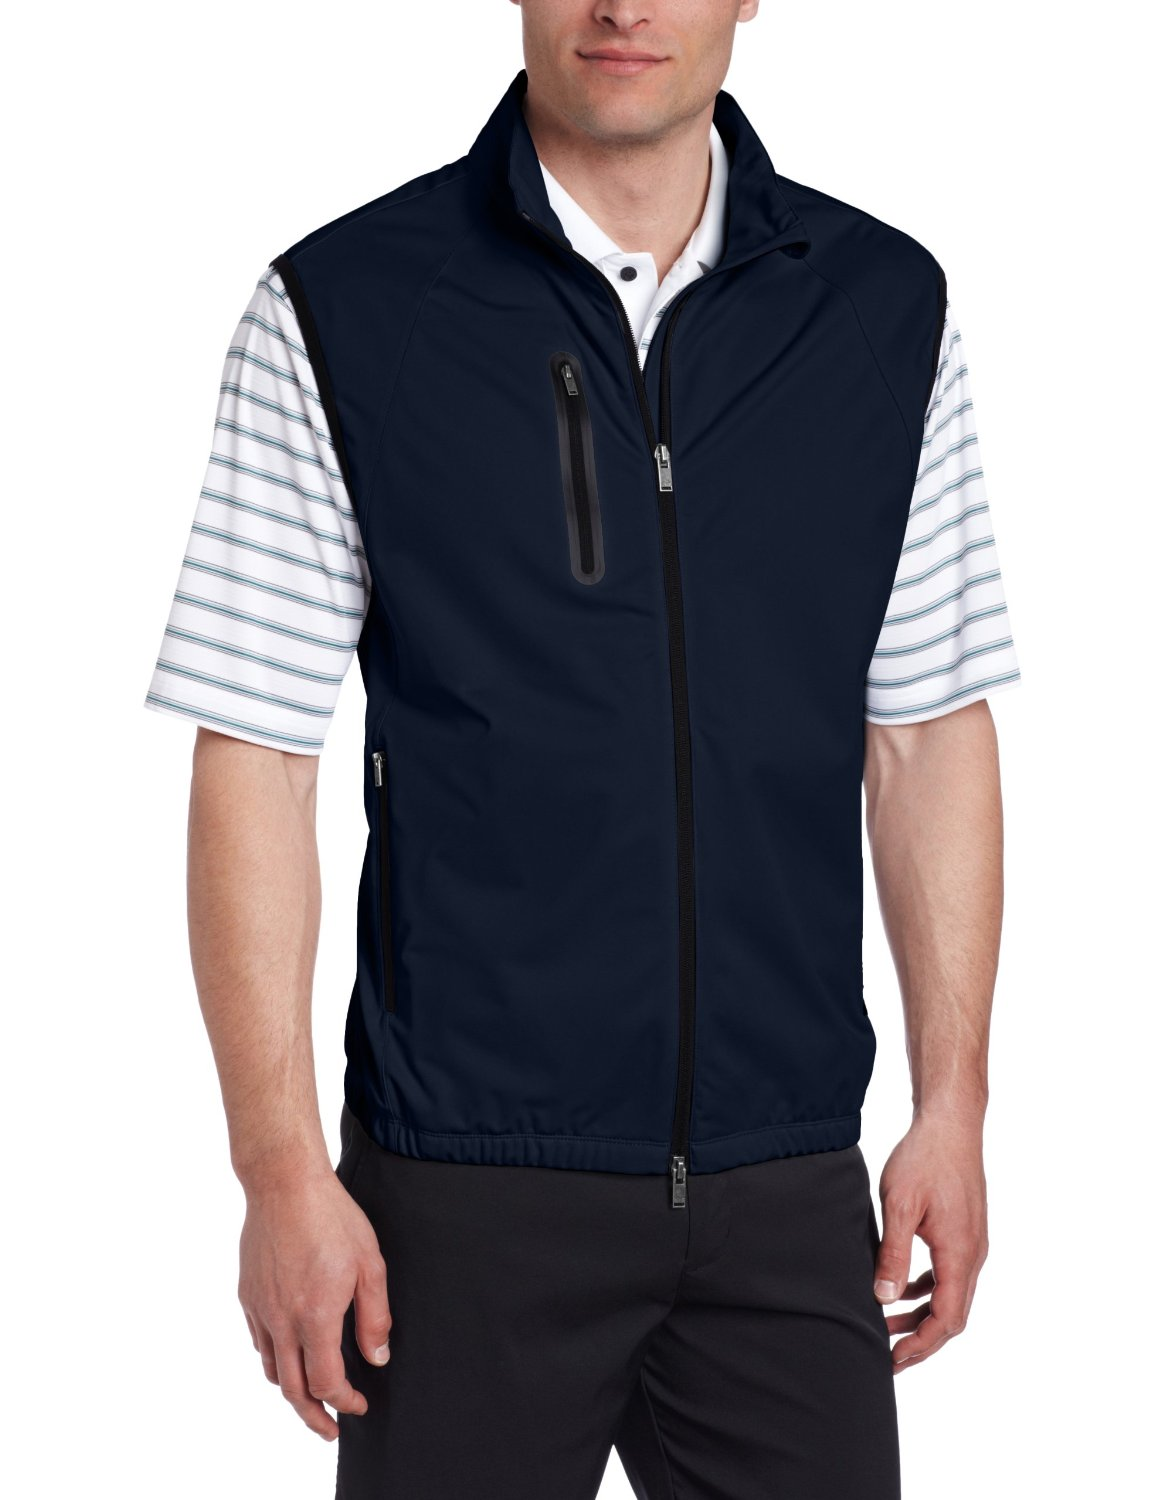 Greg Norman Mens Collection Full Zip Tech Golf Vests